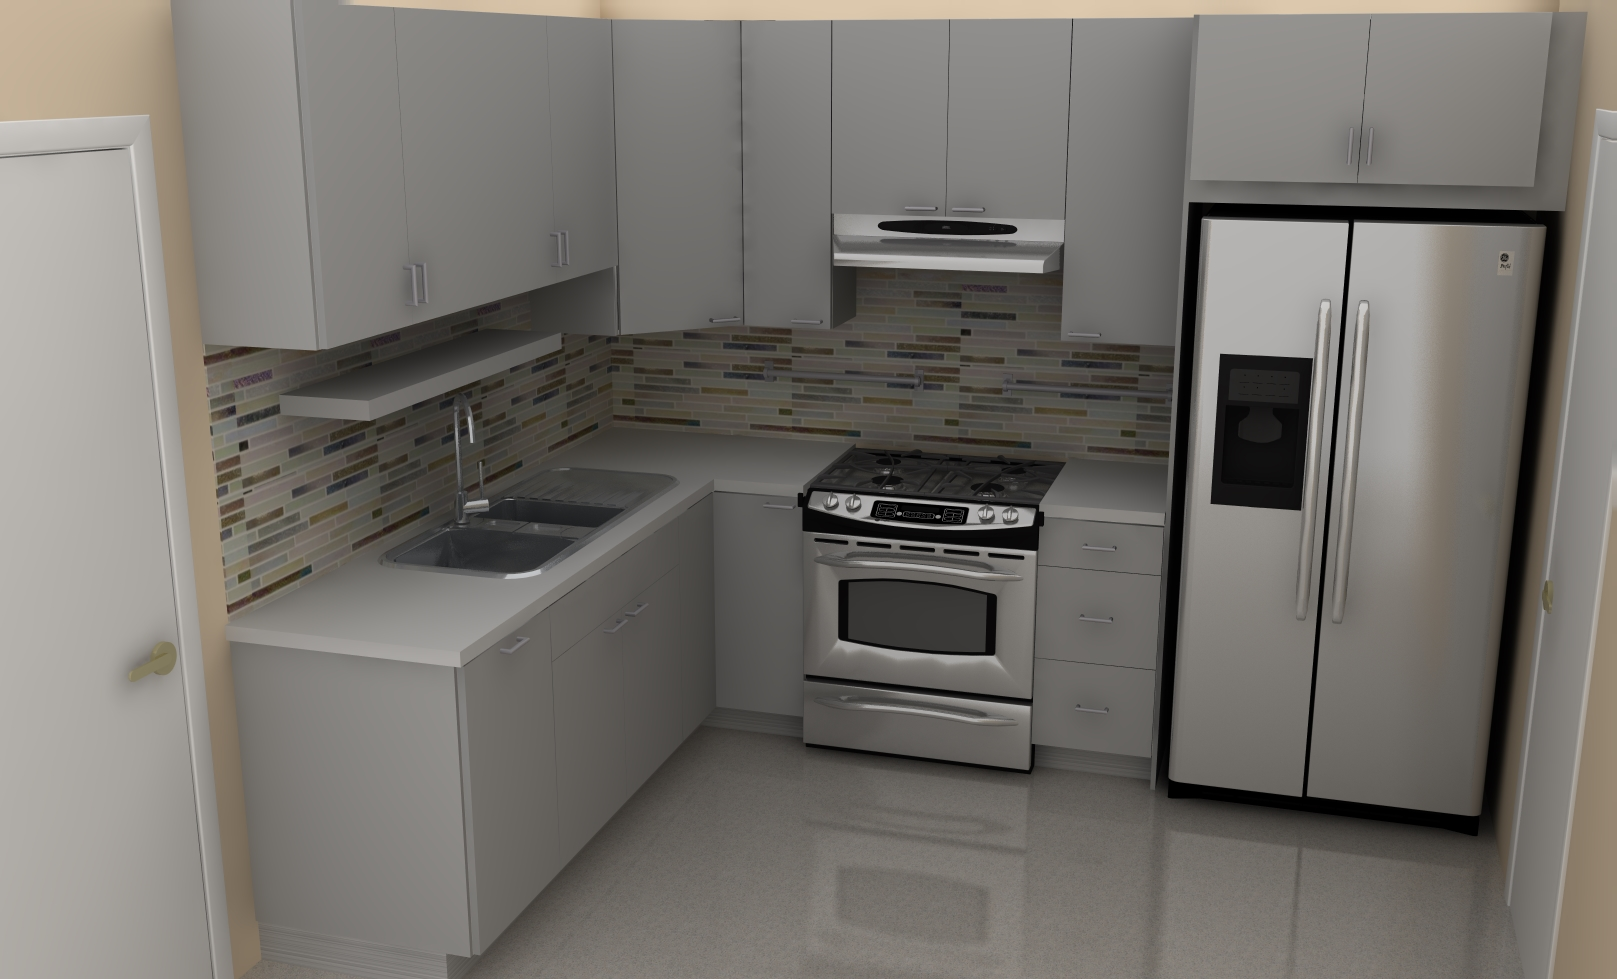 Ikea Kitchen Design Company New Ikea Kitchen Design With Appliances